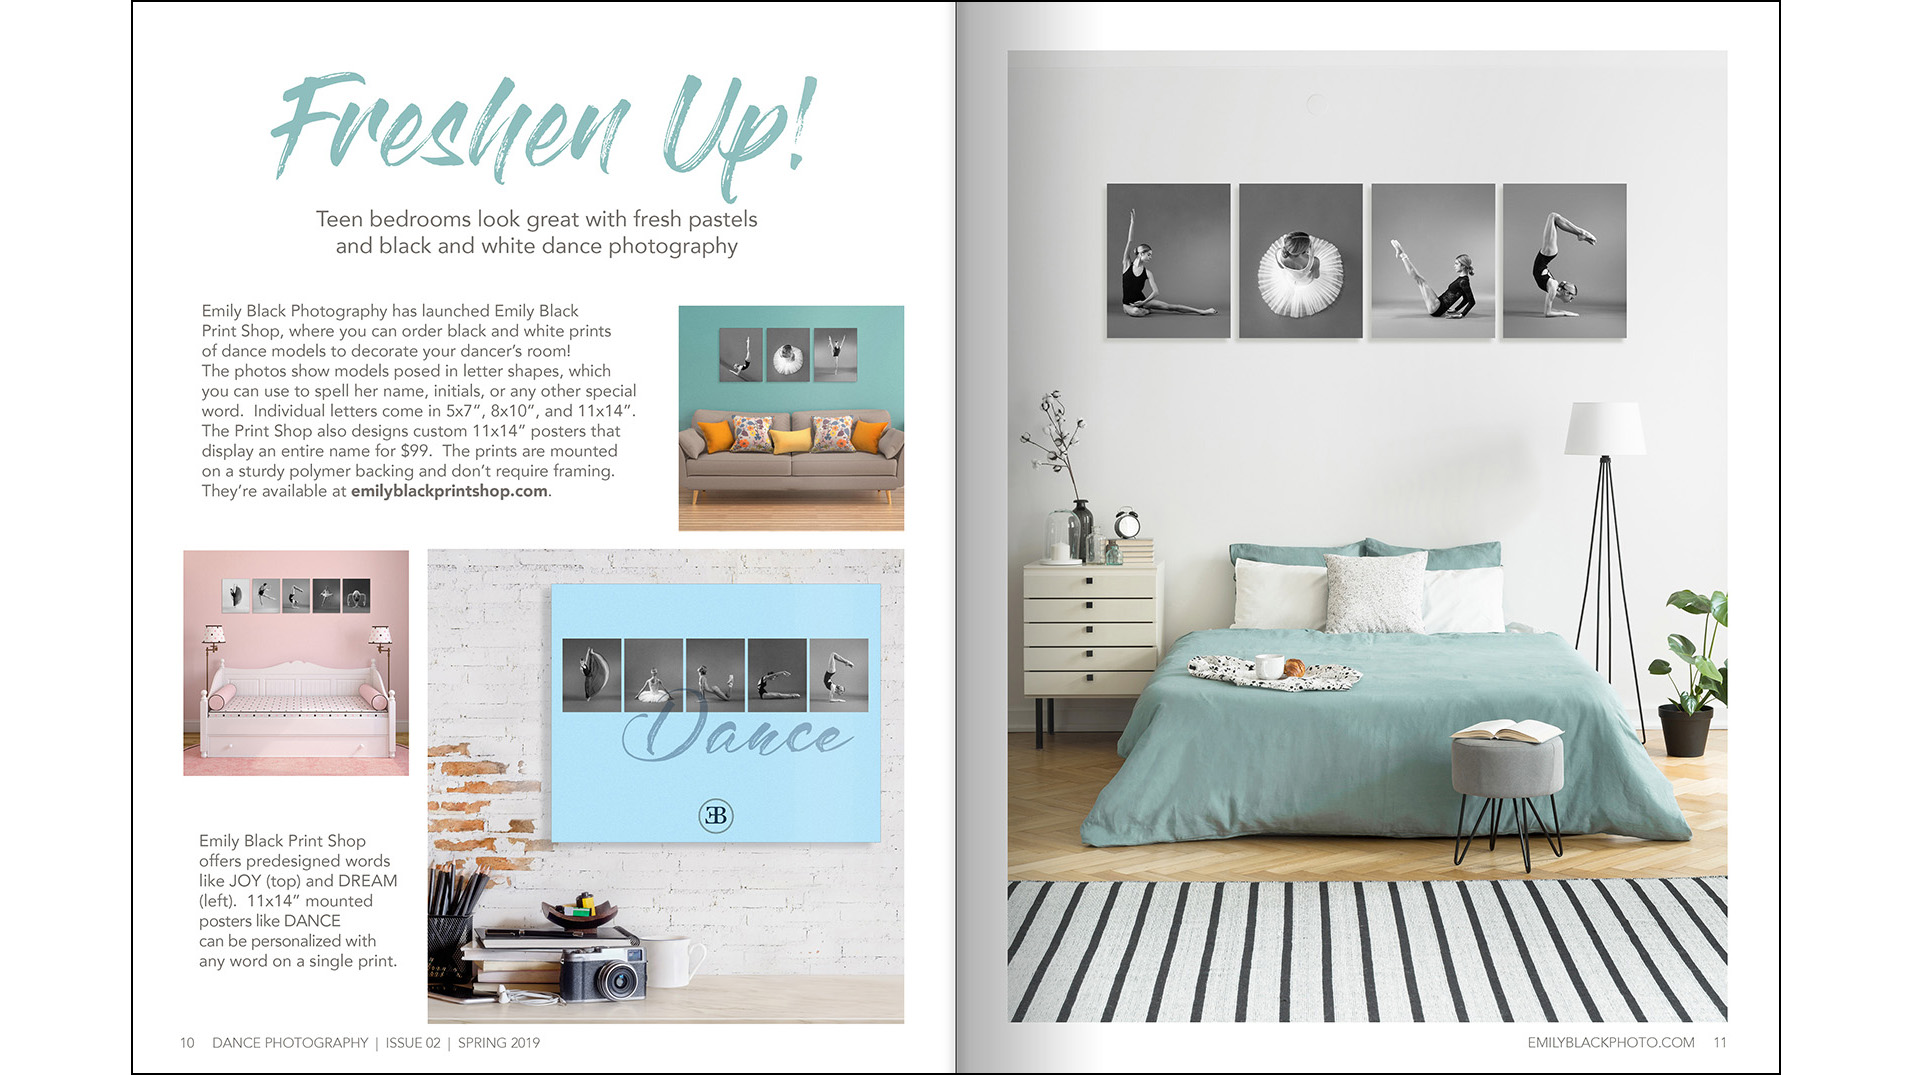 Featured Product - I used a decorating magazine format to highlight my retail line of black and white photographic prints.